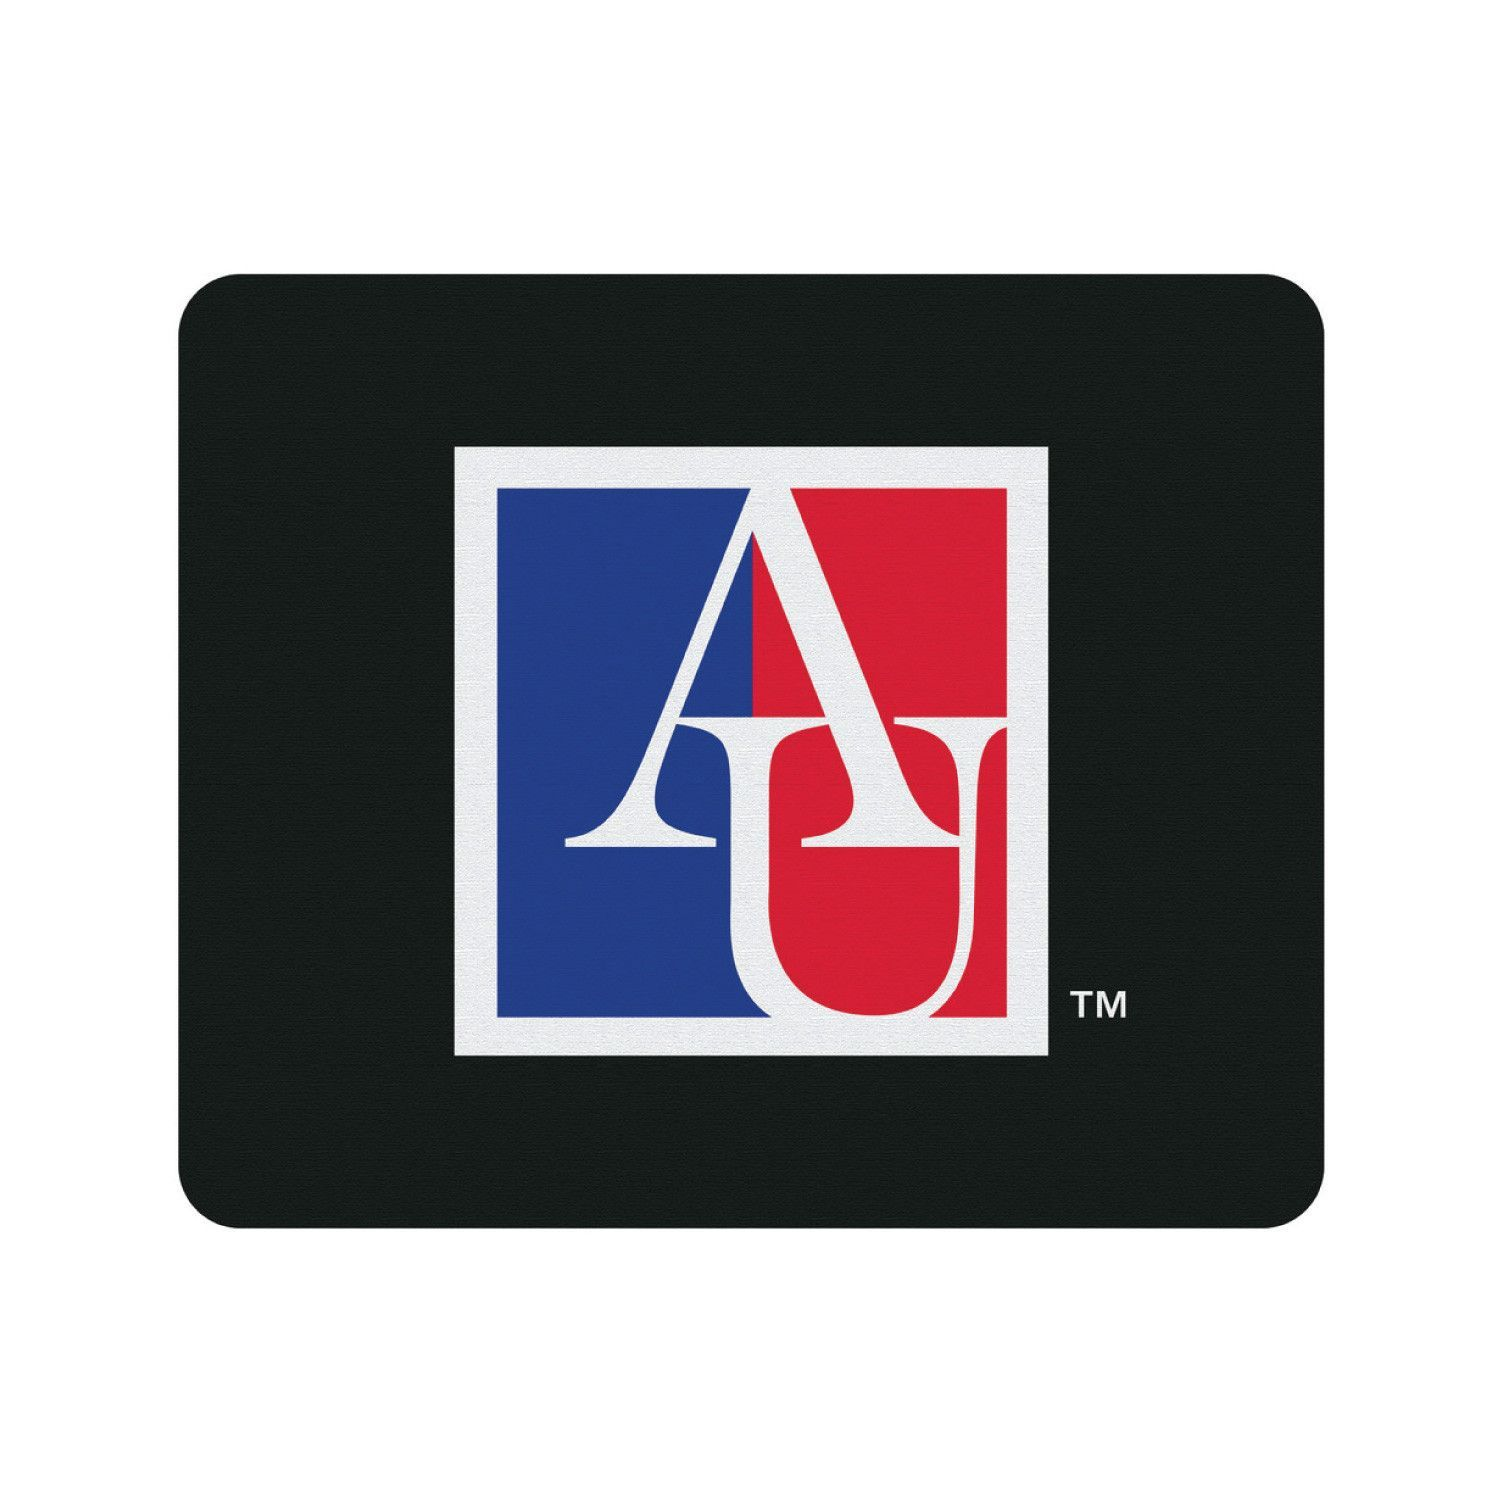 American University Black Mouse Pad Classic American